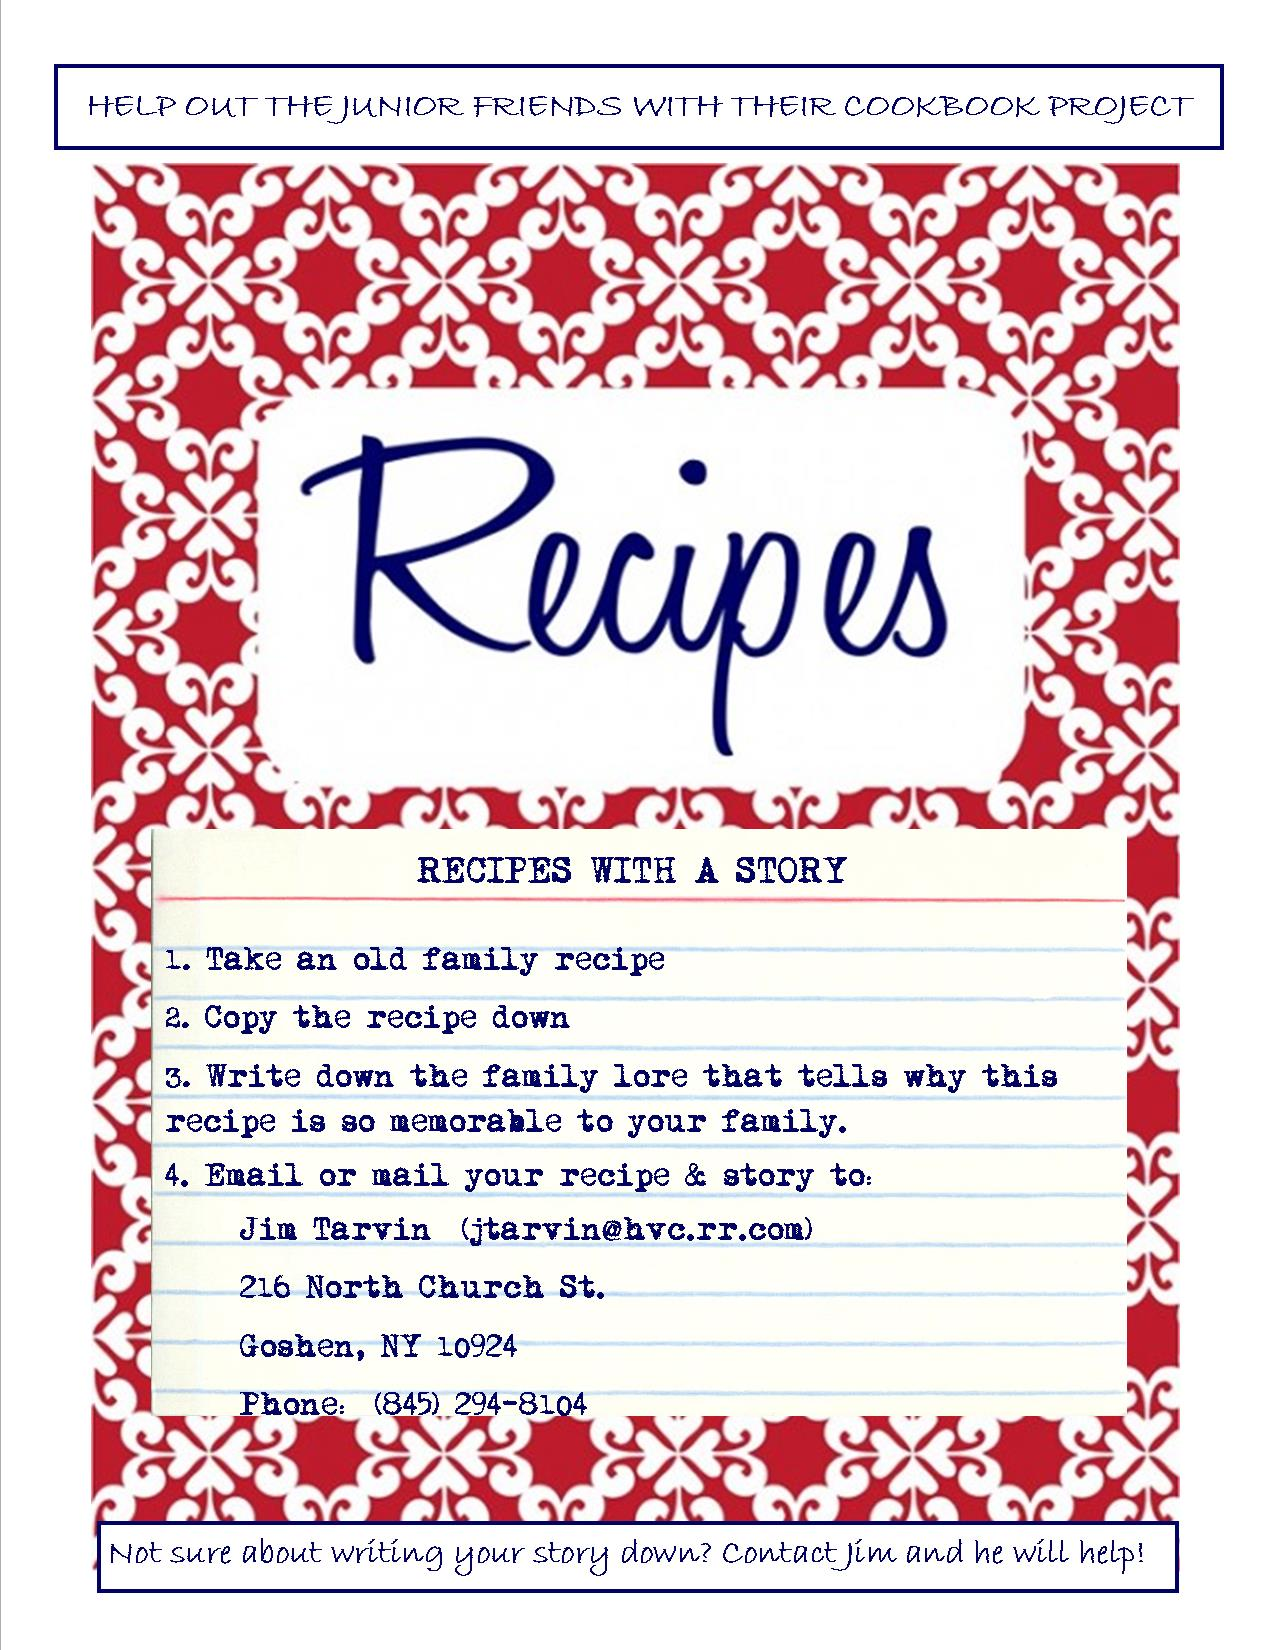 Jr. Friends recipe with a story